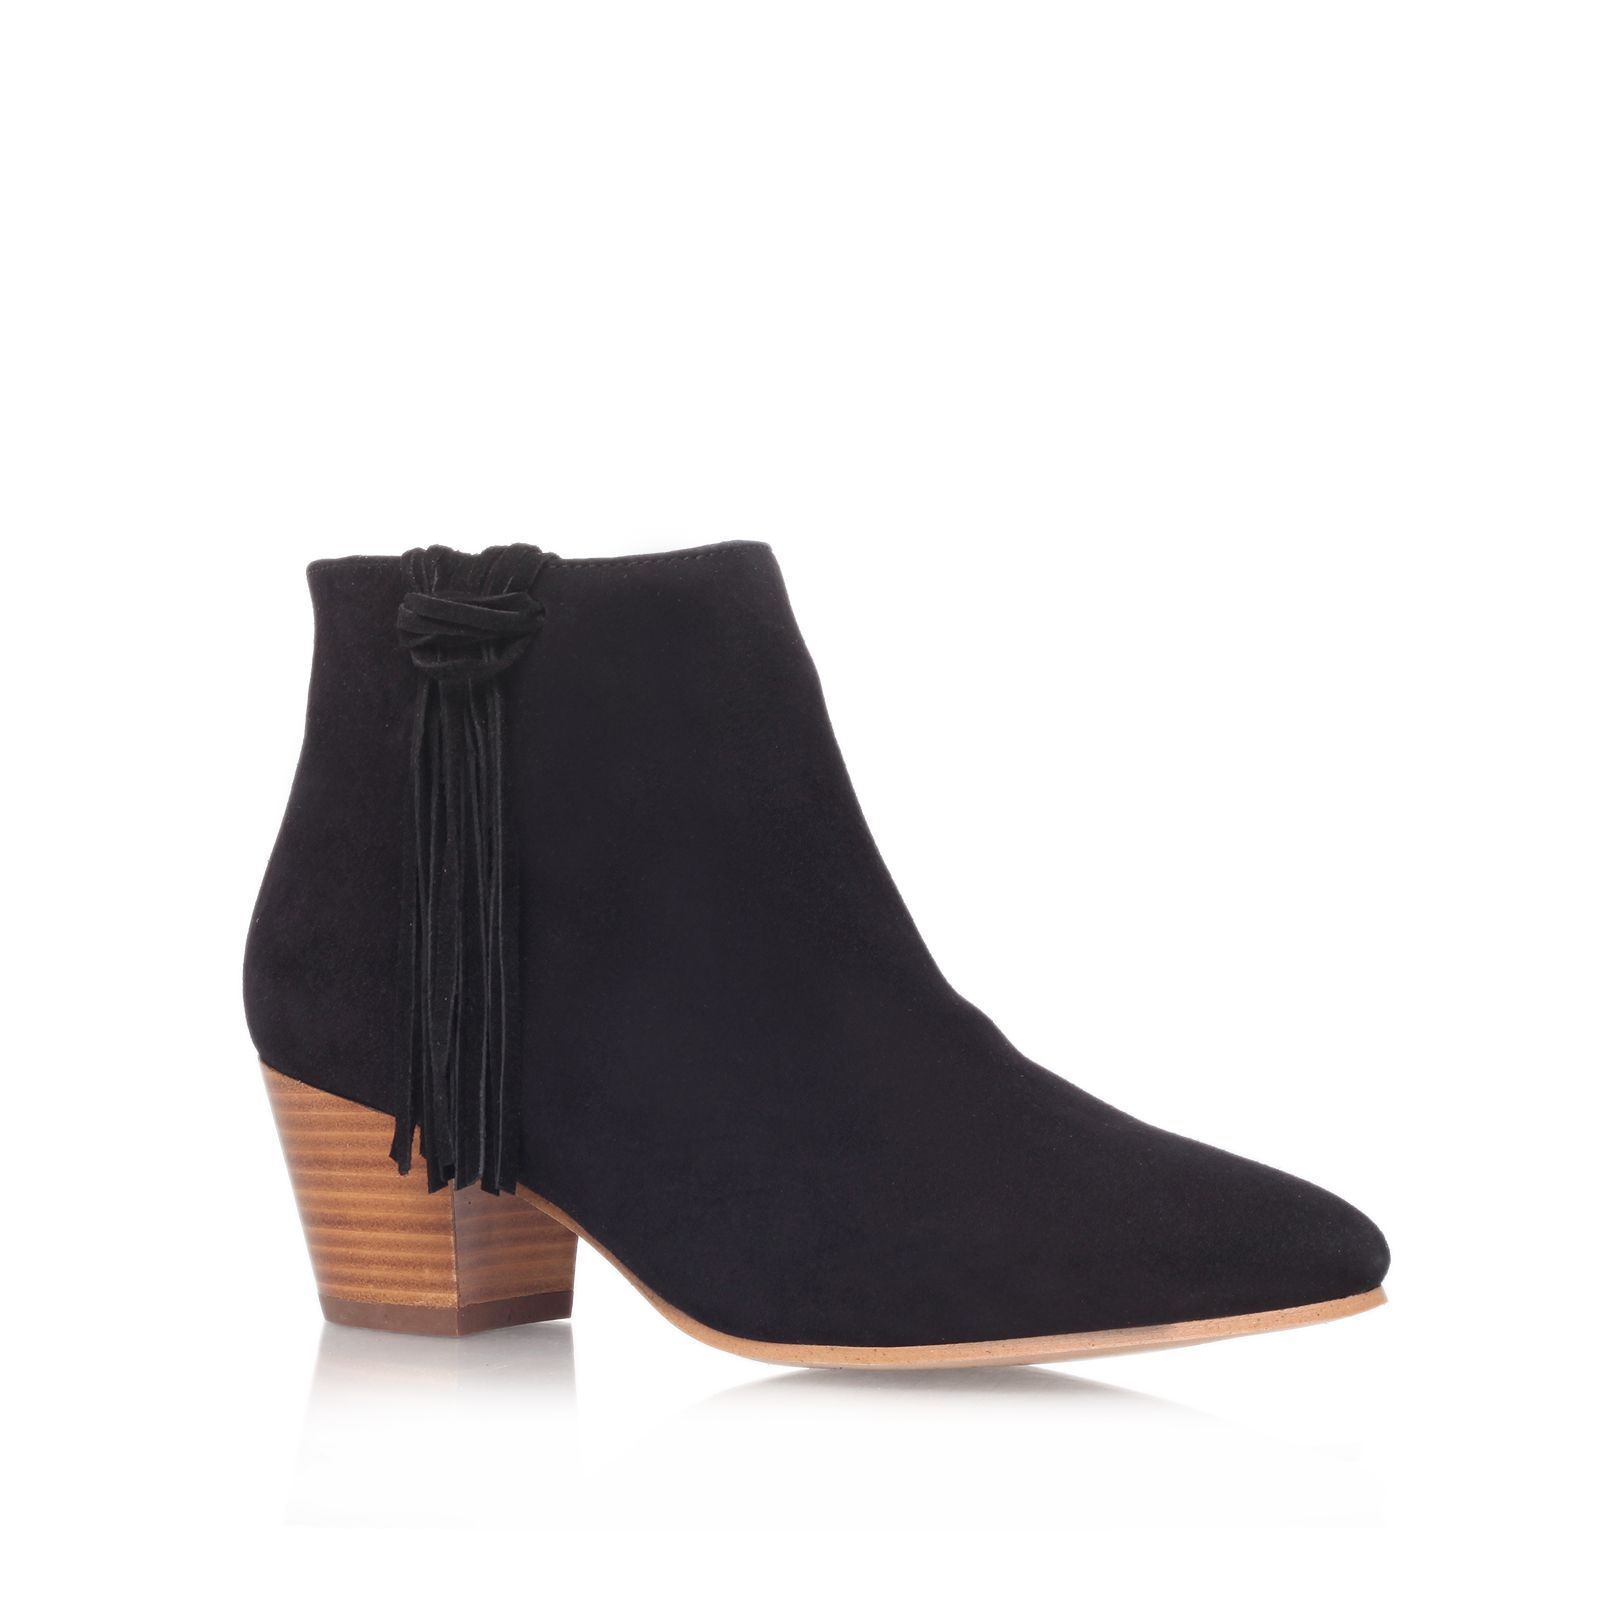 Shimmy leather almond toe block heel ankle boots